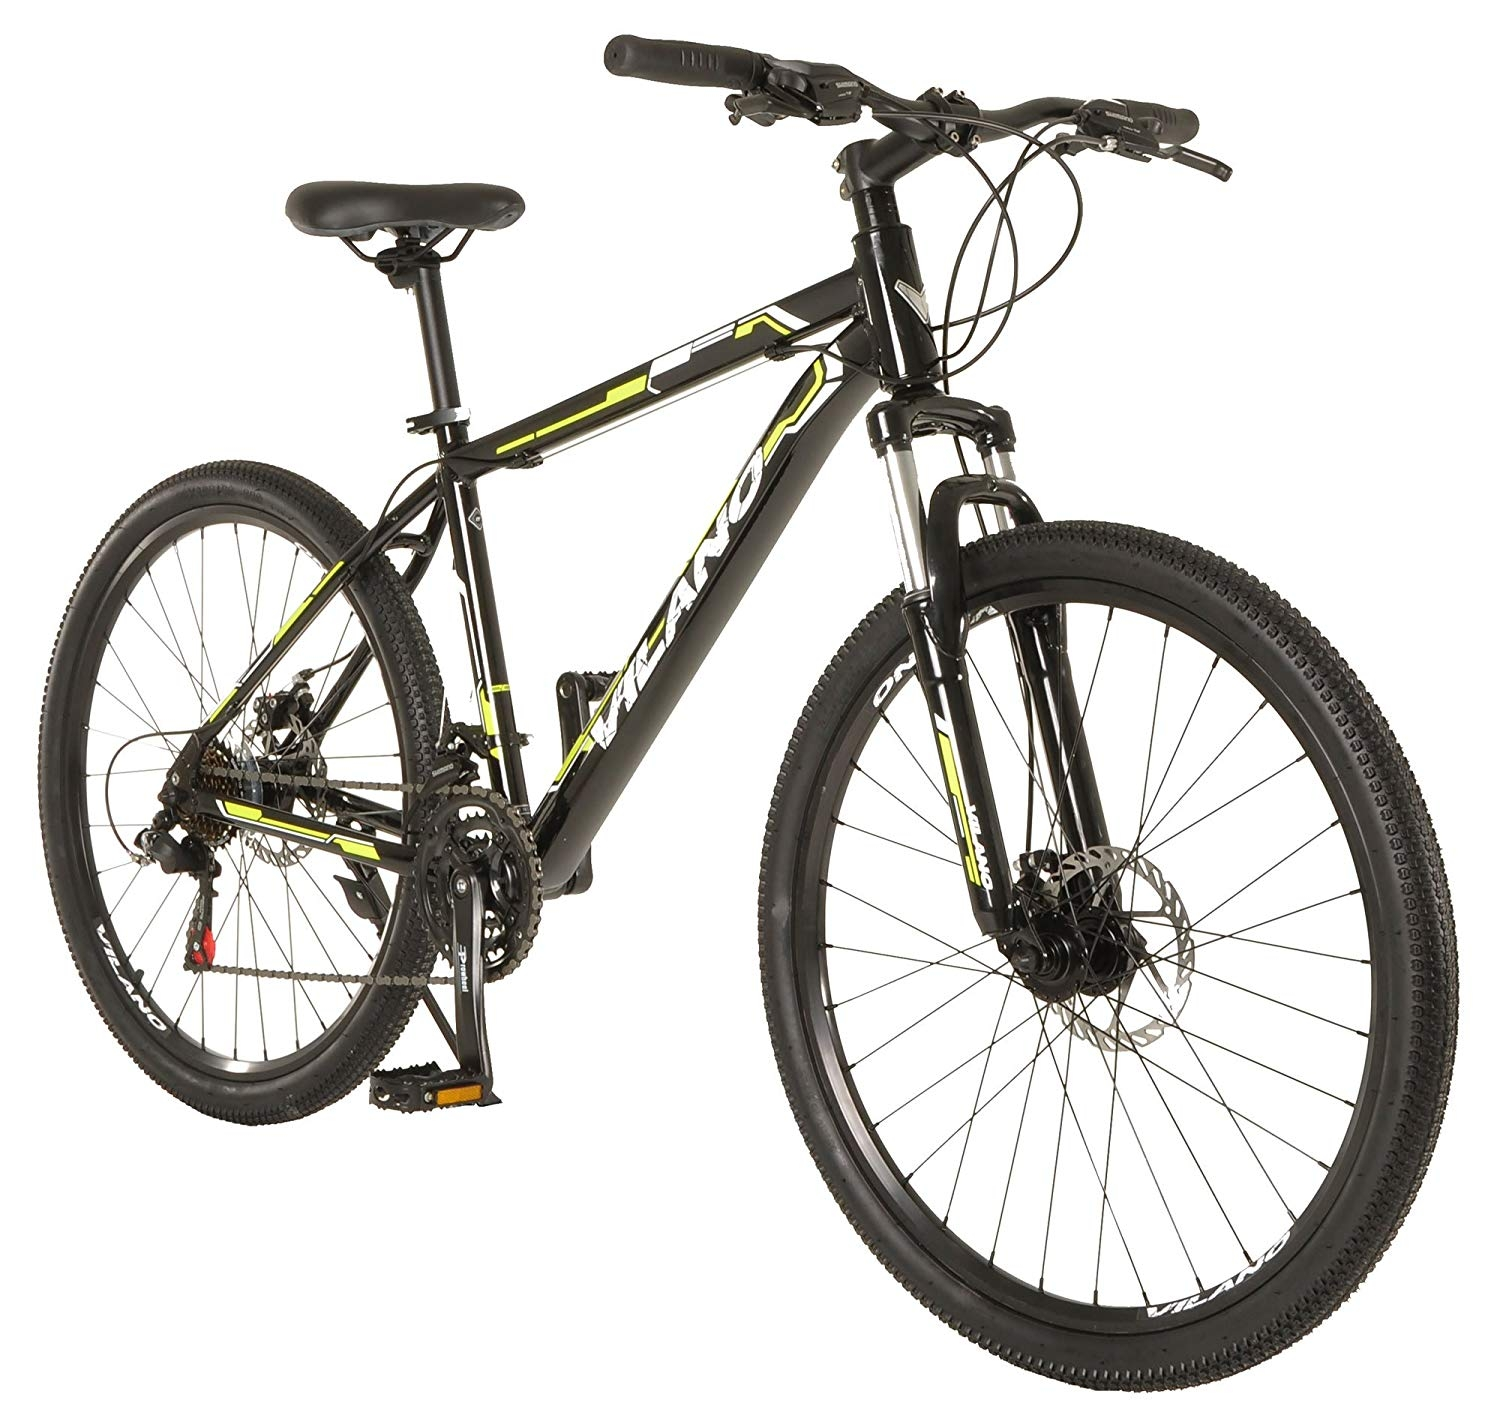 Vilano Mountain Bike Ridge 1.0 MTB 21 Speed Review